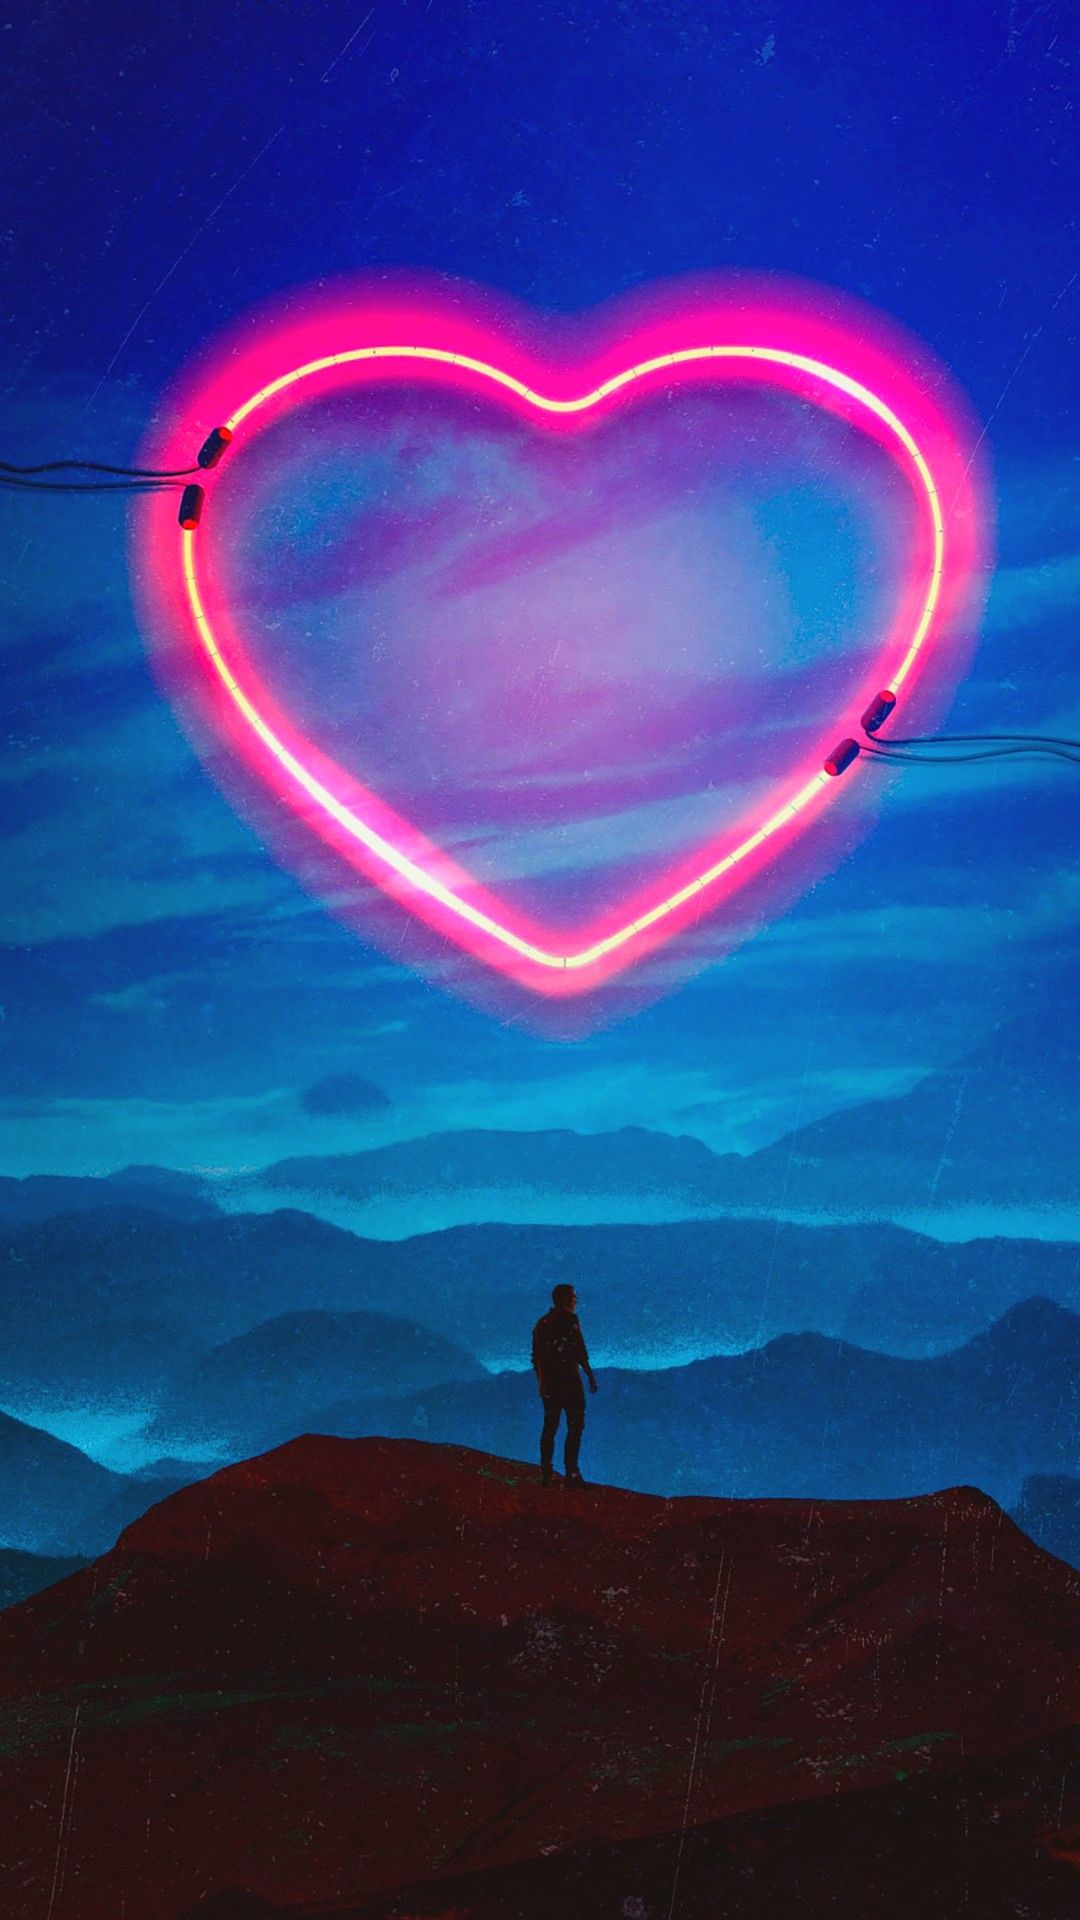 Neon Heart Lonely Man Wallpapers 1080x1920 Android Wallpaper Love Heart Wallpaper Hd Cute Mobile Wallpapers